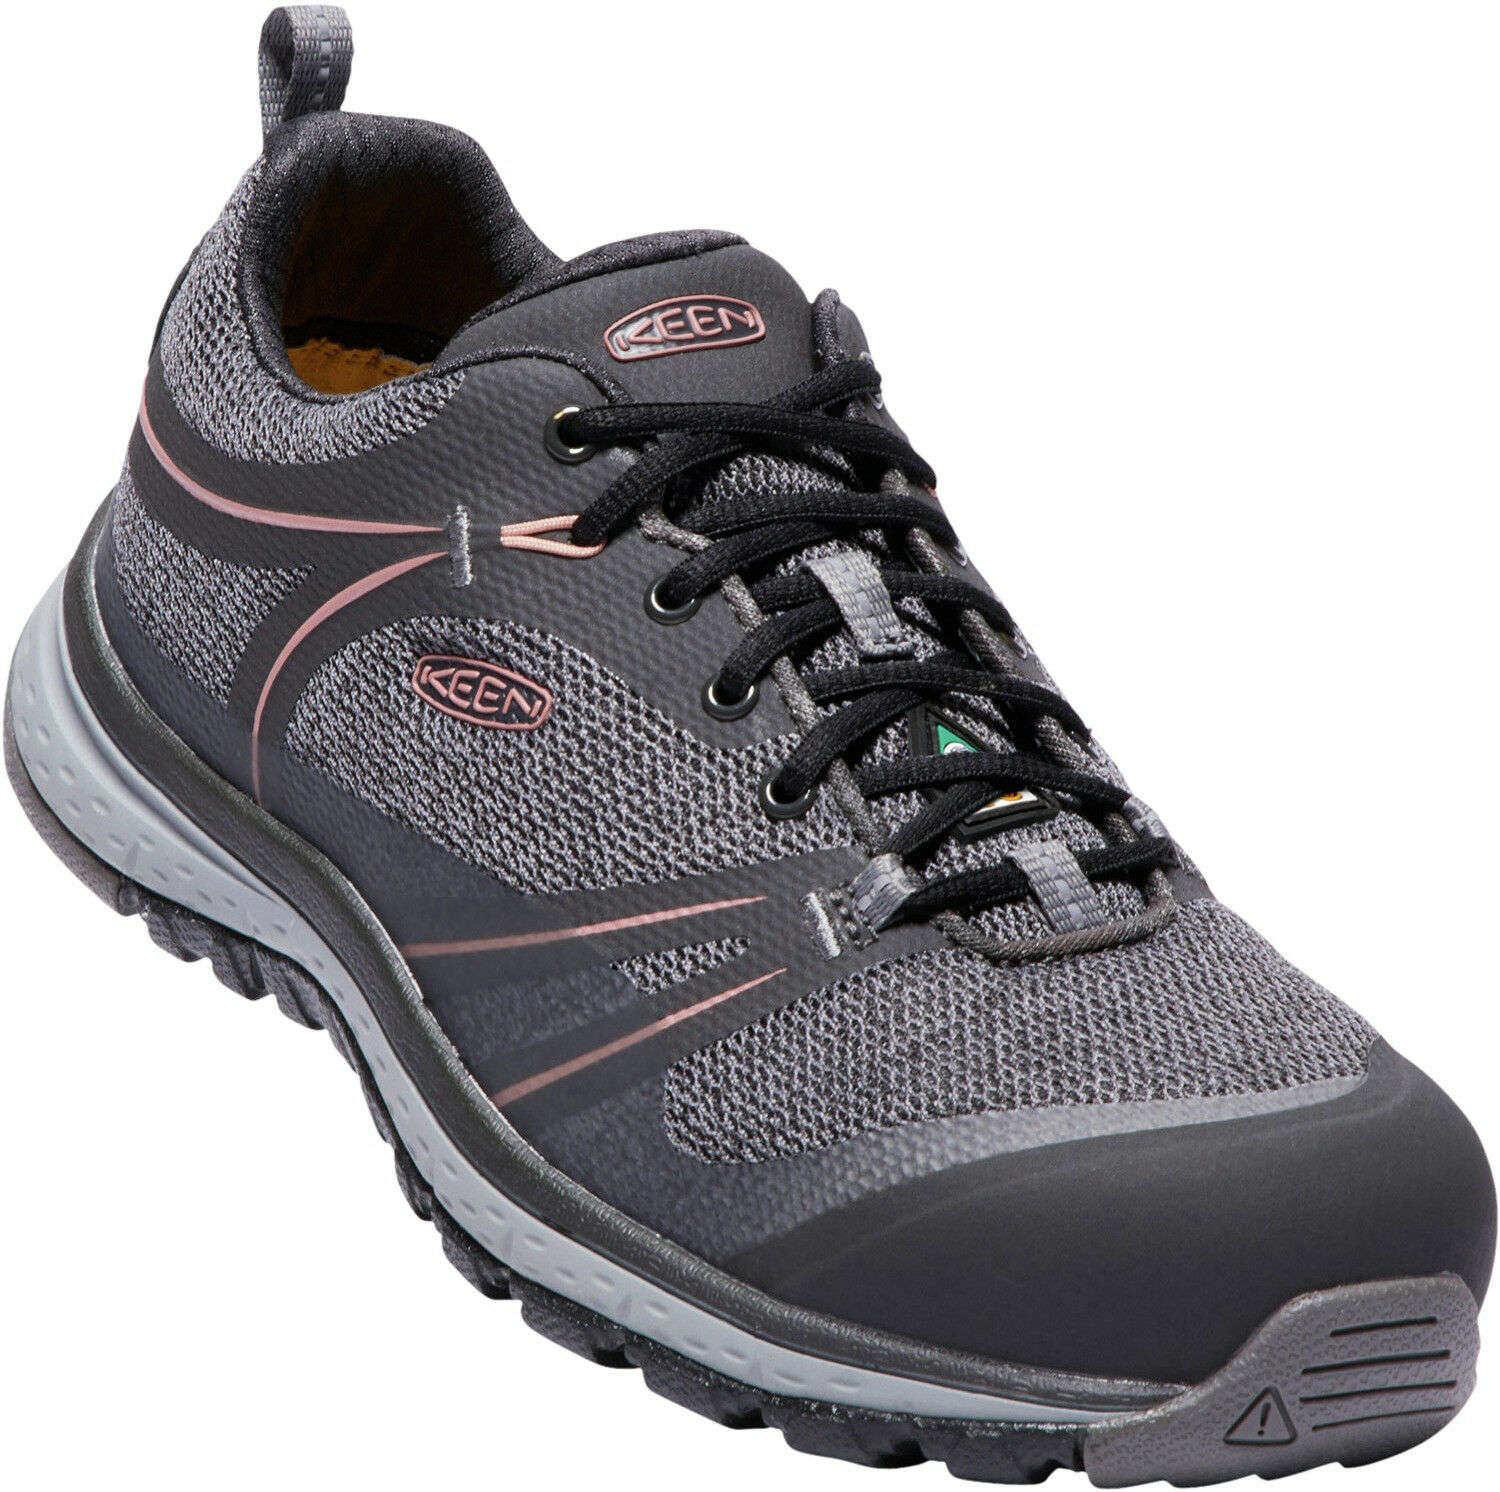 KEEN Sedona Low Work shoes 1019319 for women CSA Approved